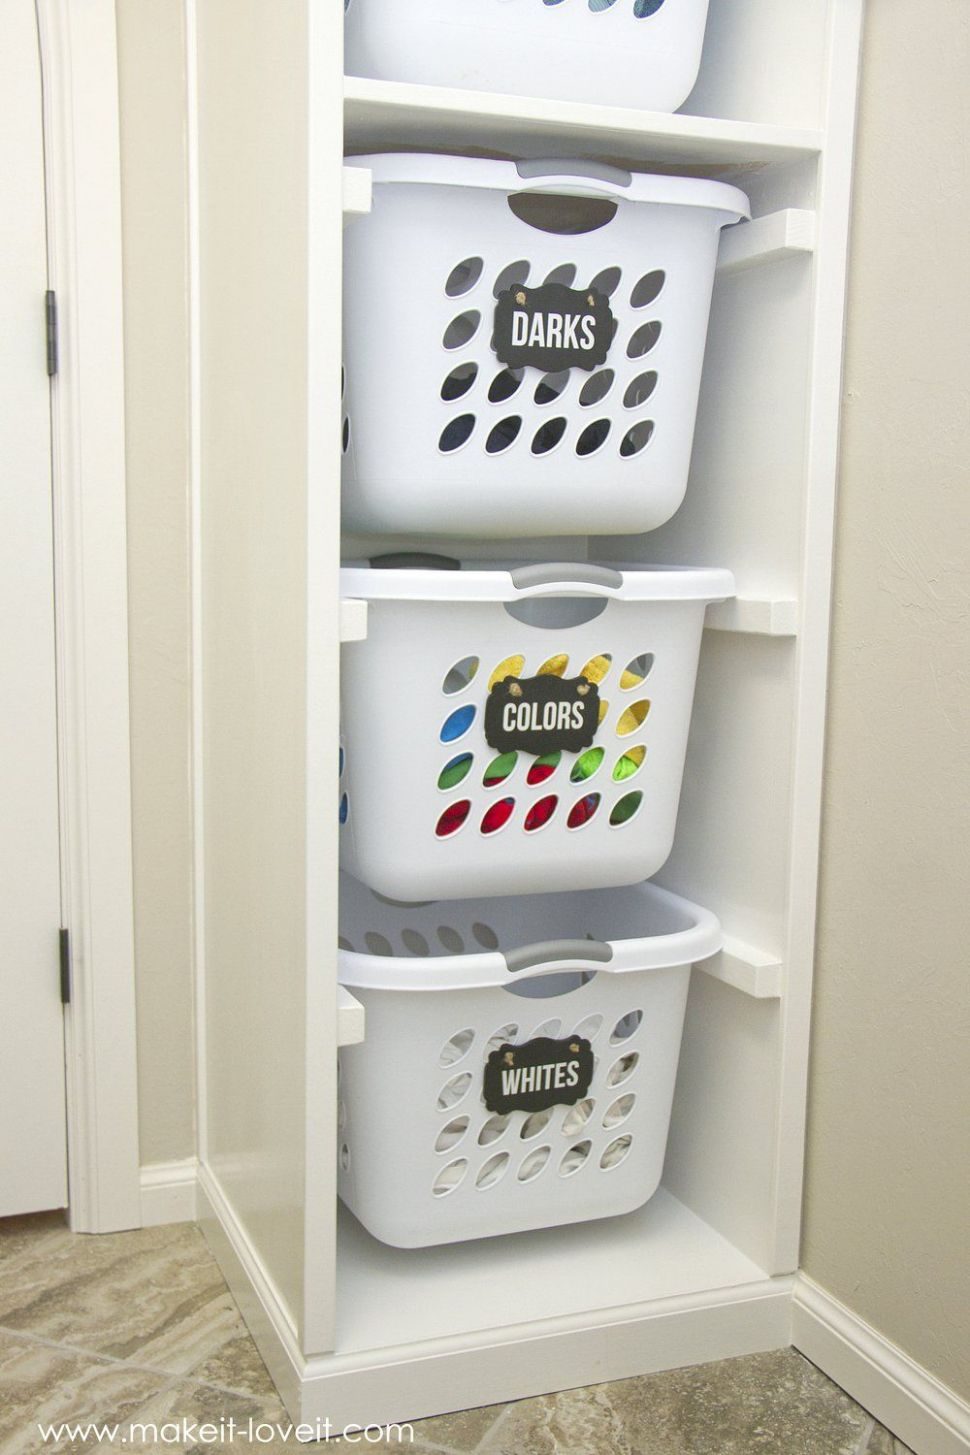 DIY Laundry Basket Organizer (...Built In) | Make It and Love It ..